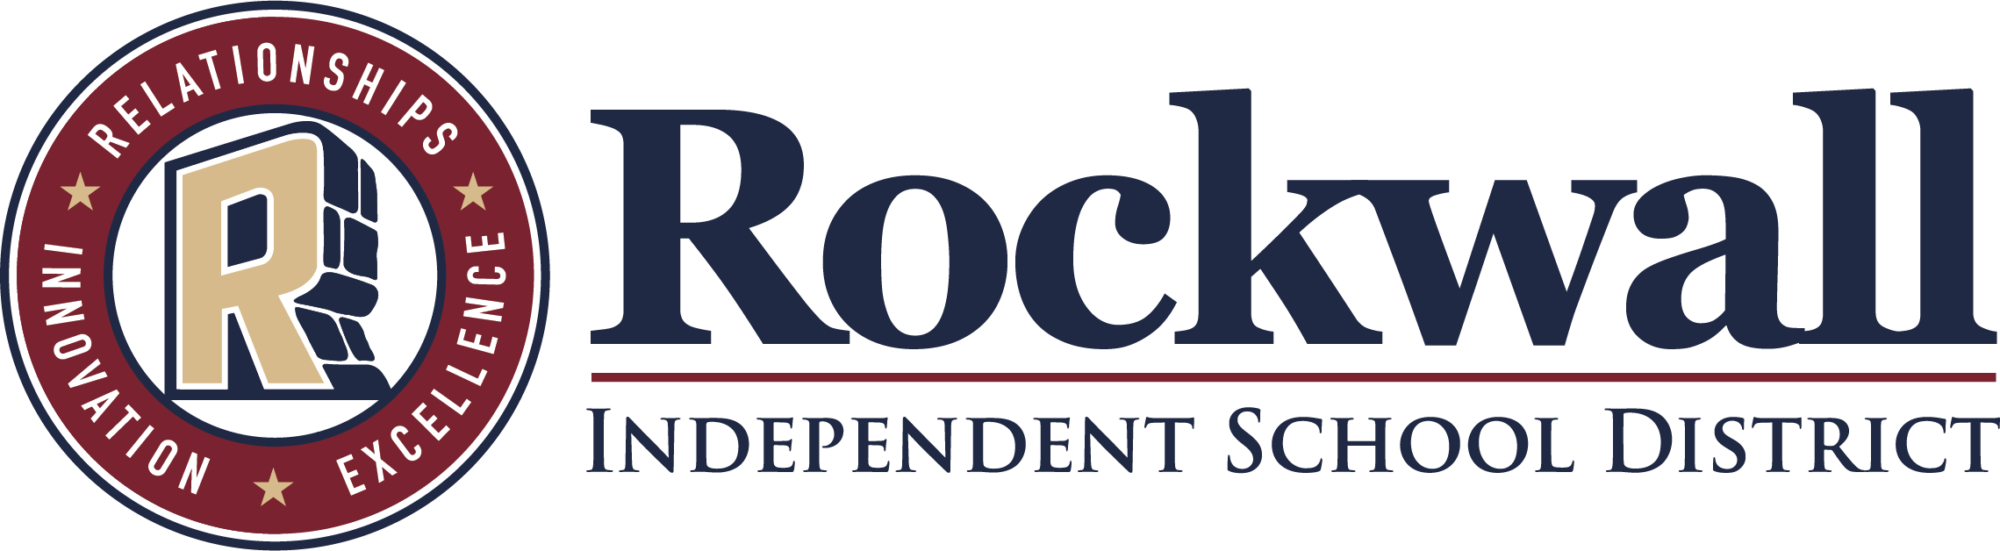 Rockwall independent school district icon.